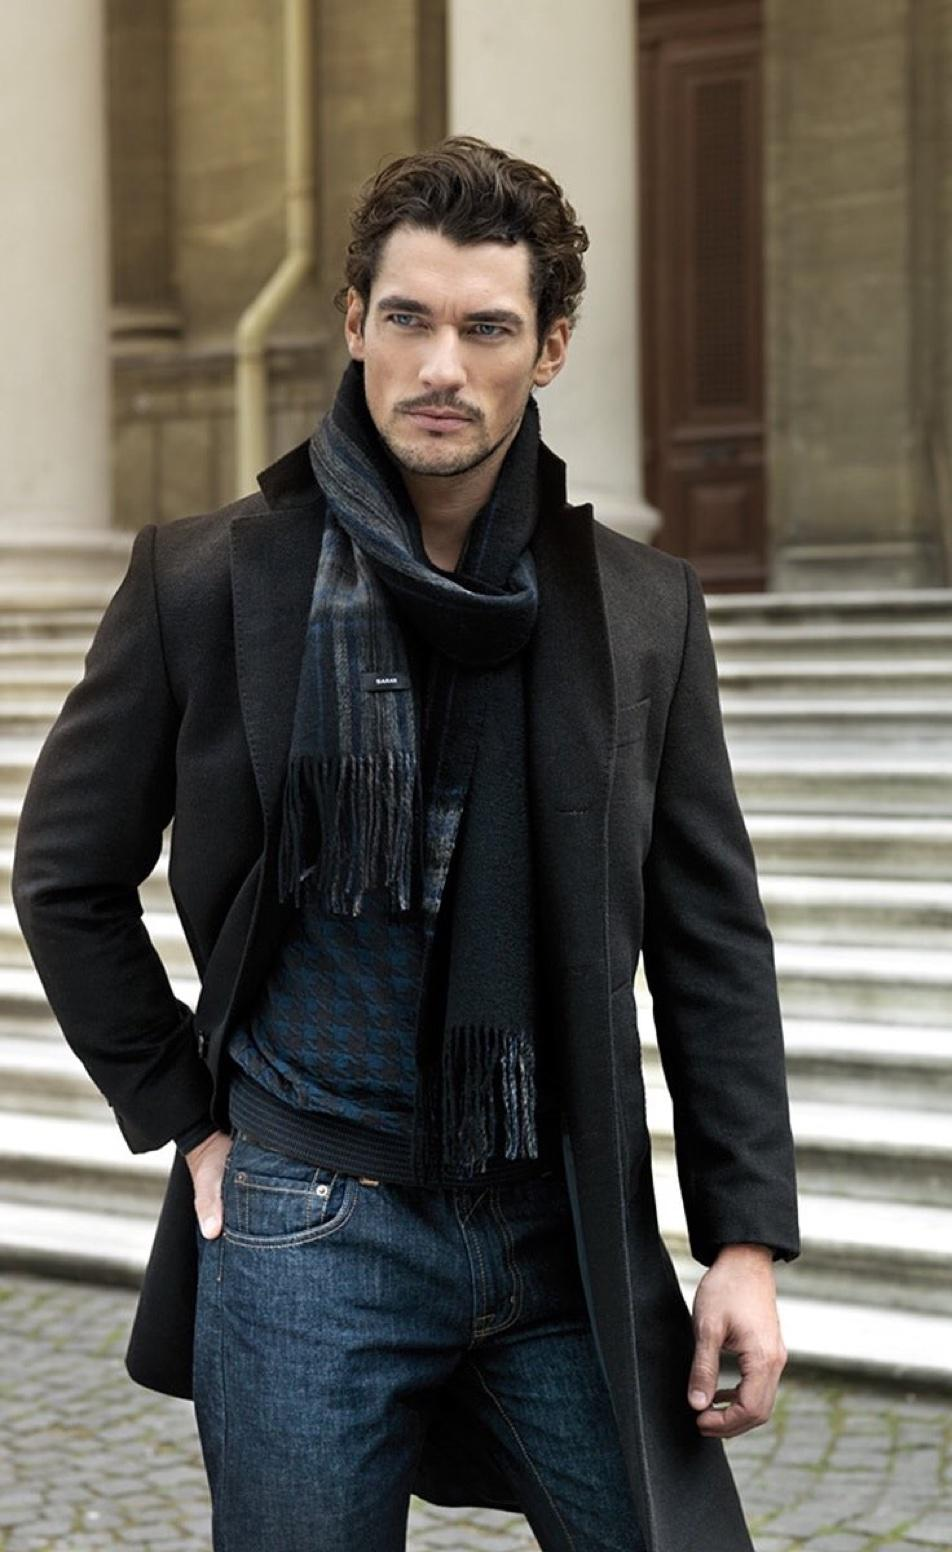 A long dark coat is a great match for a classic grey scarf